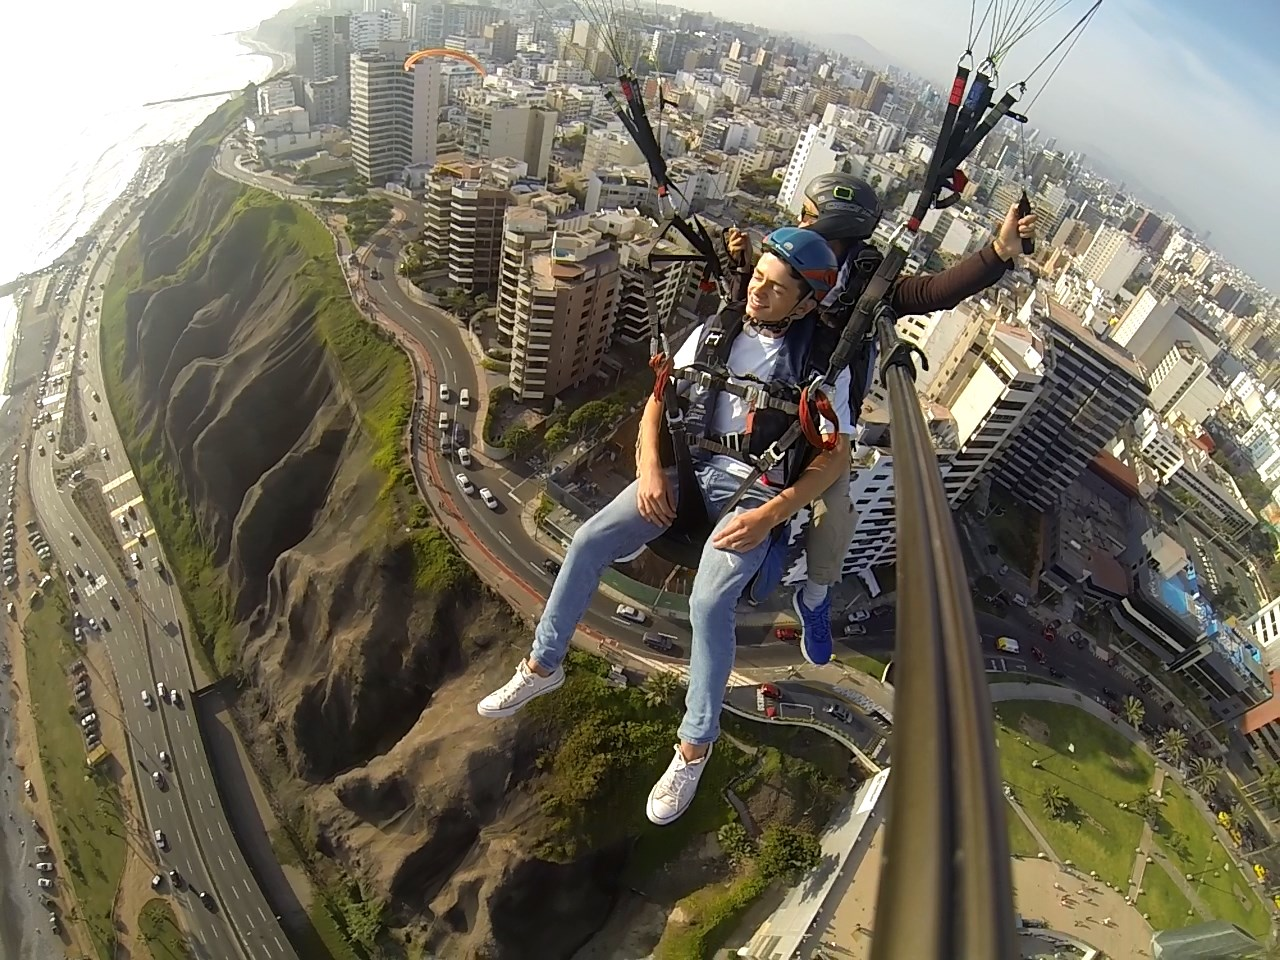 The day before I left Peru, I enjoyed seeing all the places where I visited during my time in Lima from above!